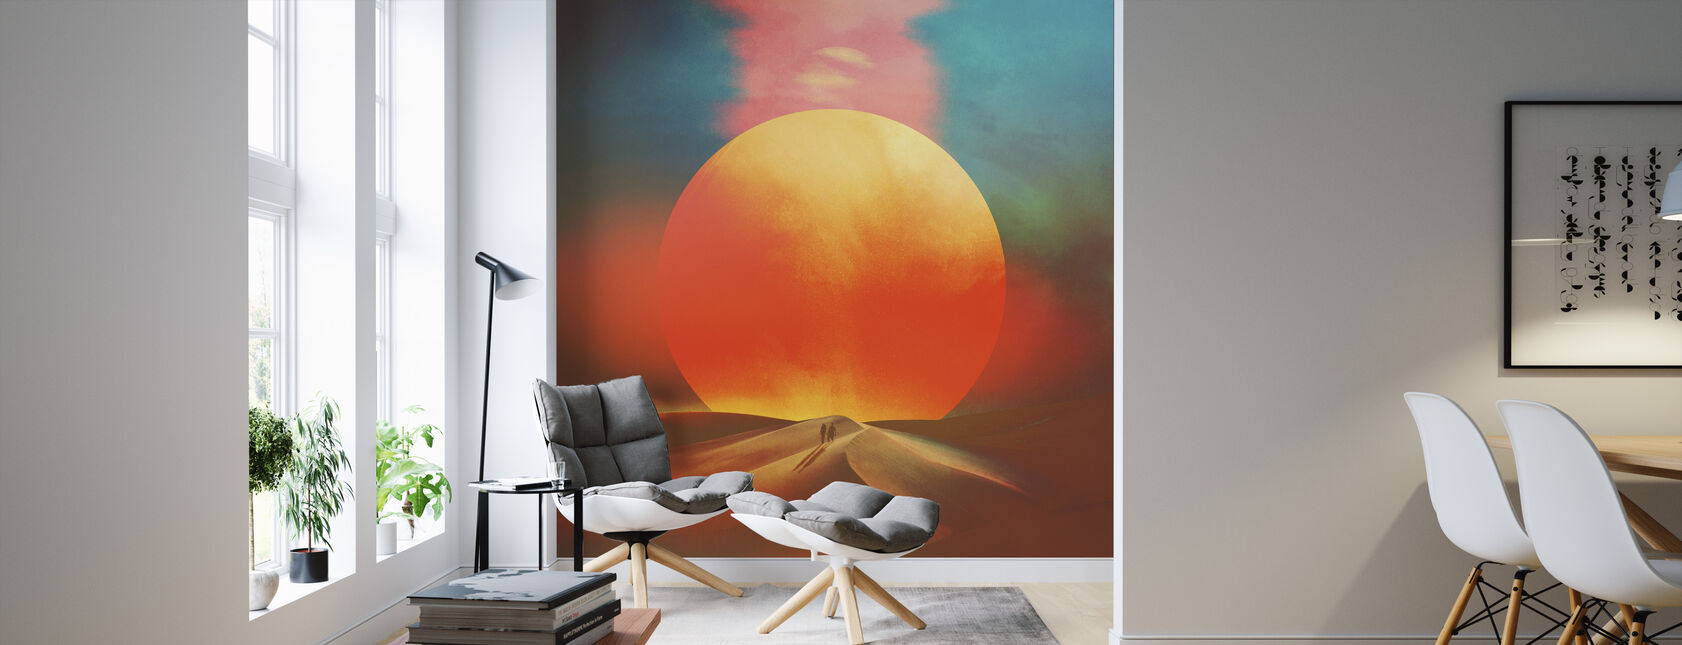 Setting Sun - Wallpaper - Living Room